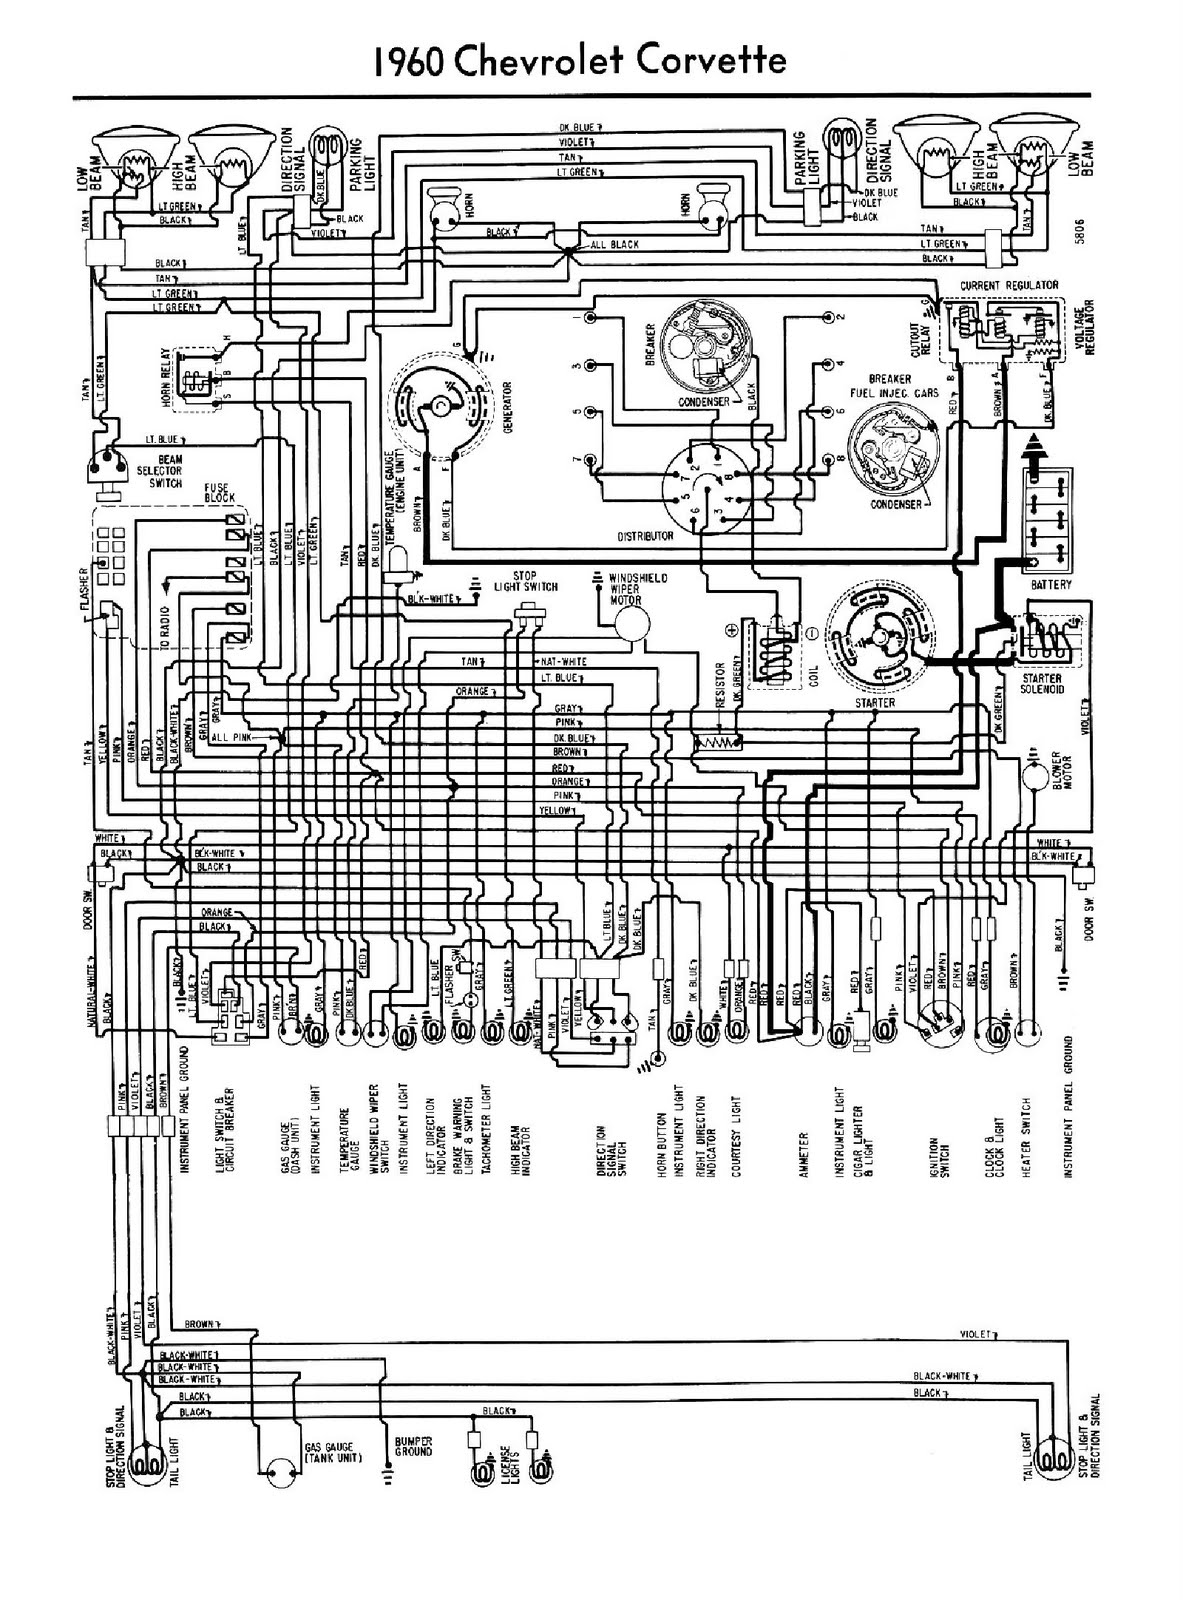 Diagram  1997 Corvette Wiring Diagram Full Version Hd Quality Wiring Diagram